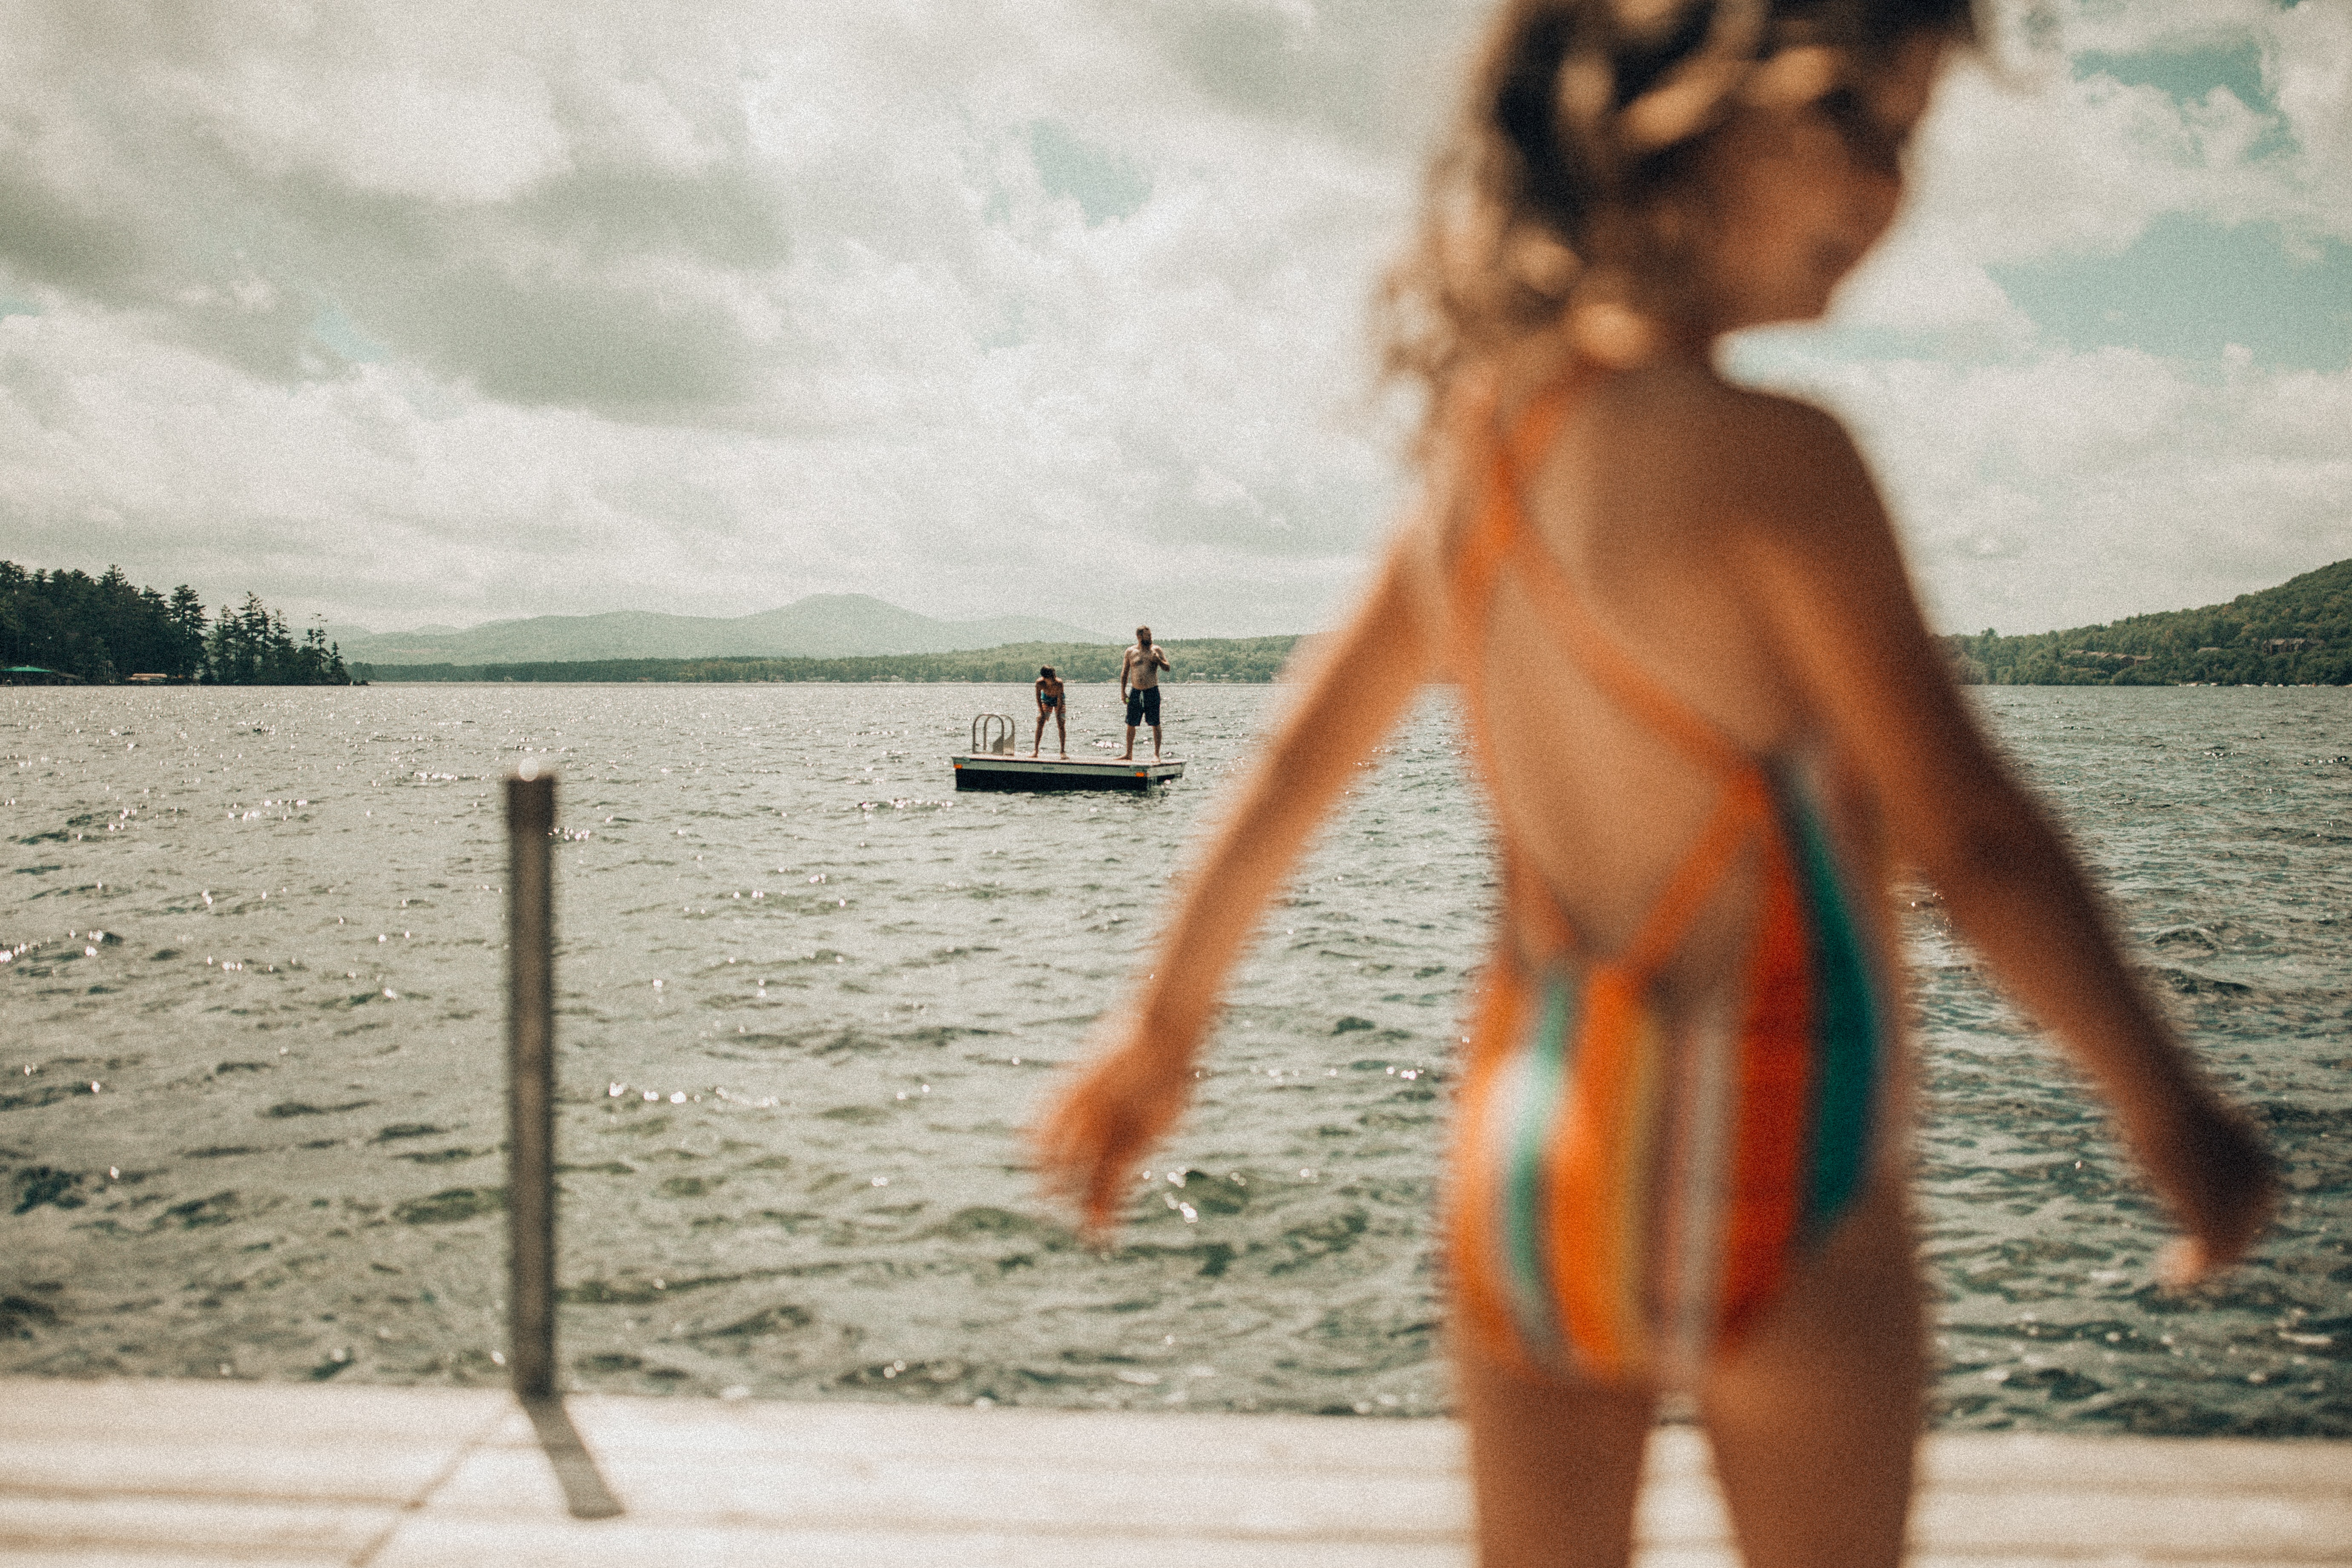 selective focus photography of two person standing on platform on body of water